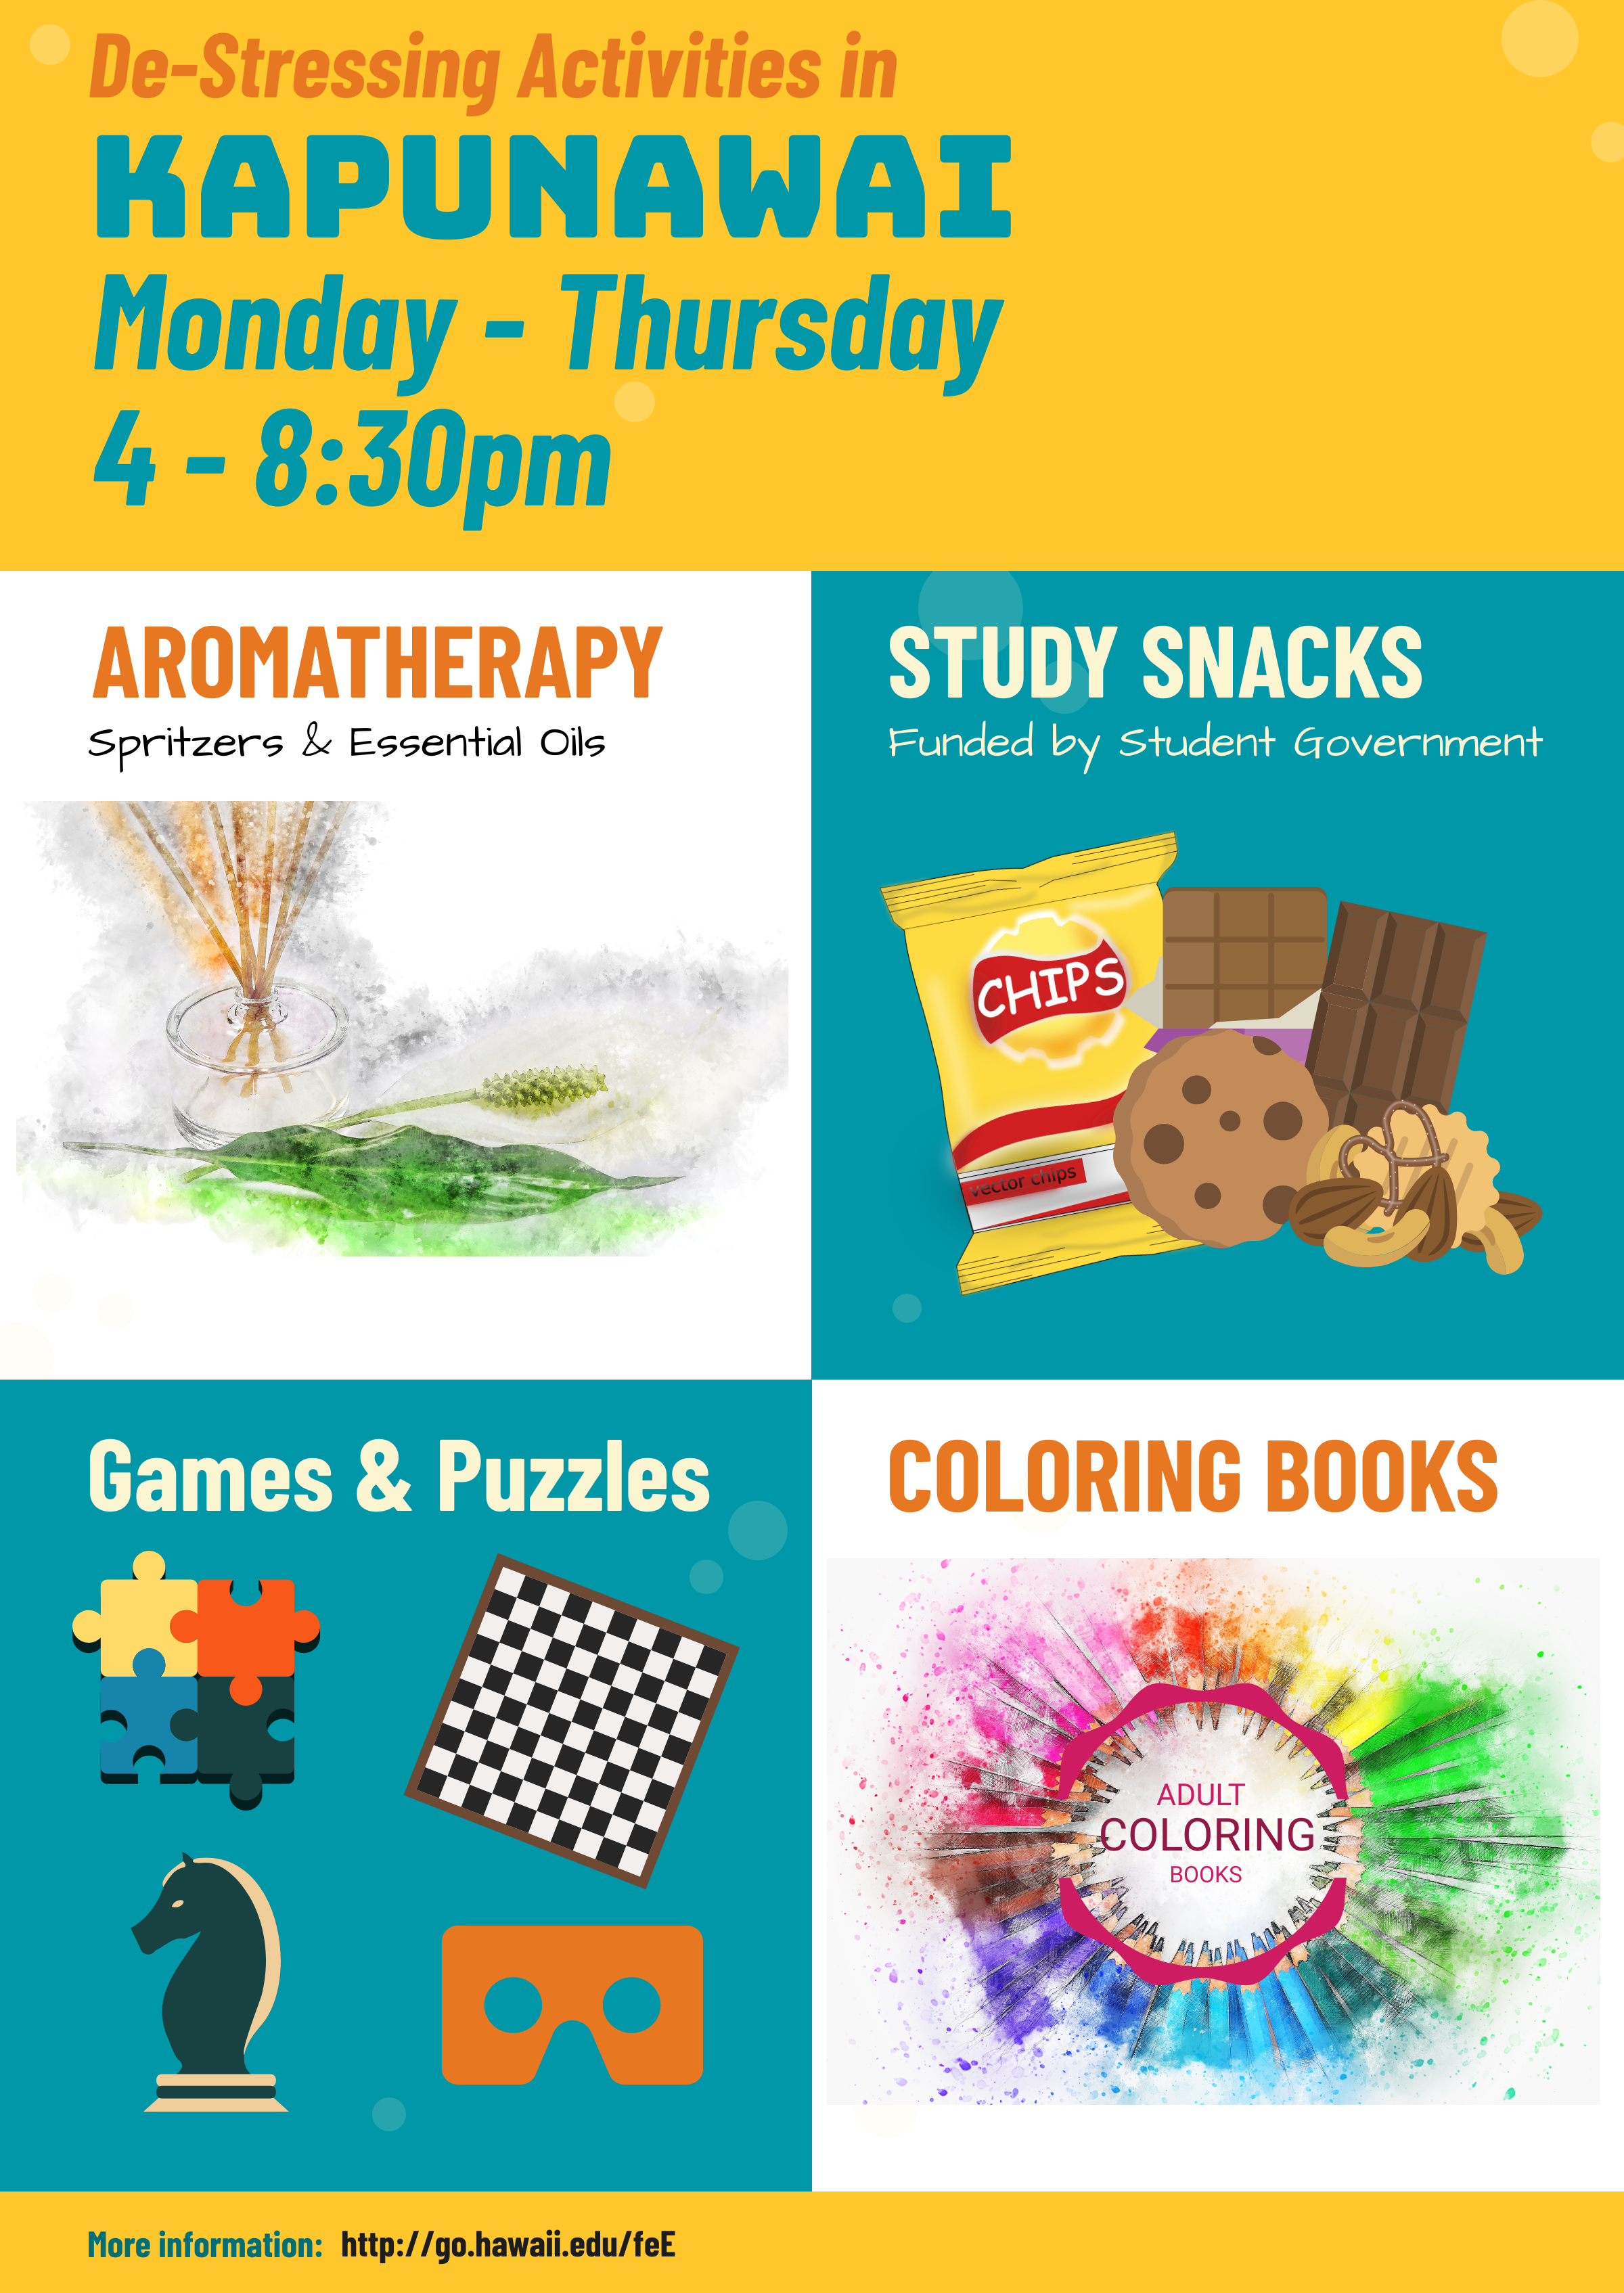 Finals Countdown De-Stressing Activities in Kapunawai: Monday-Thursday, 4-8pm